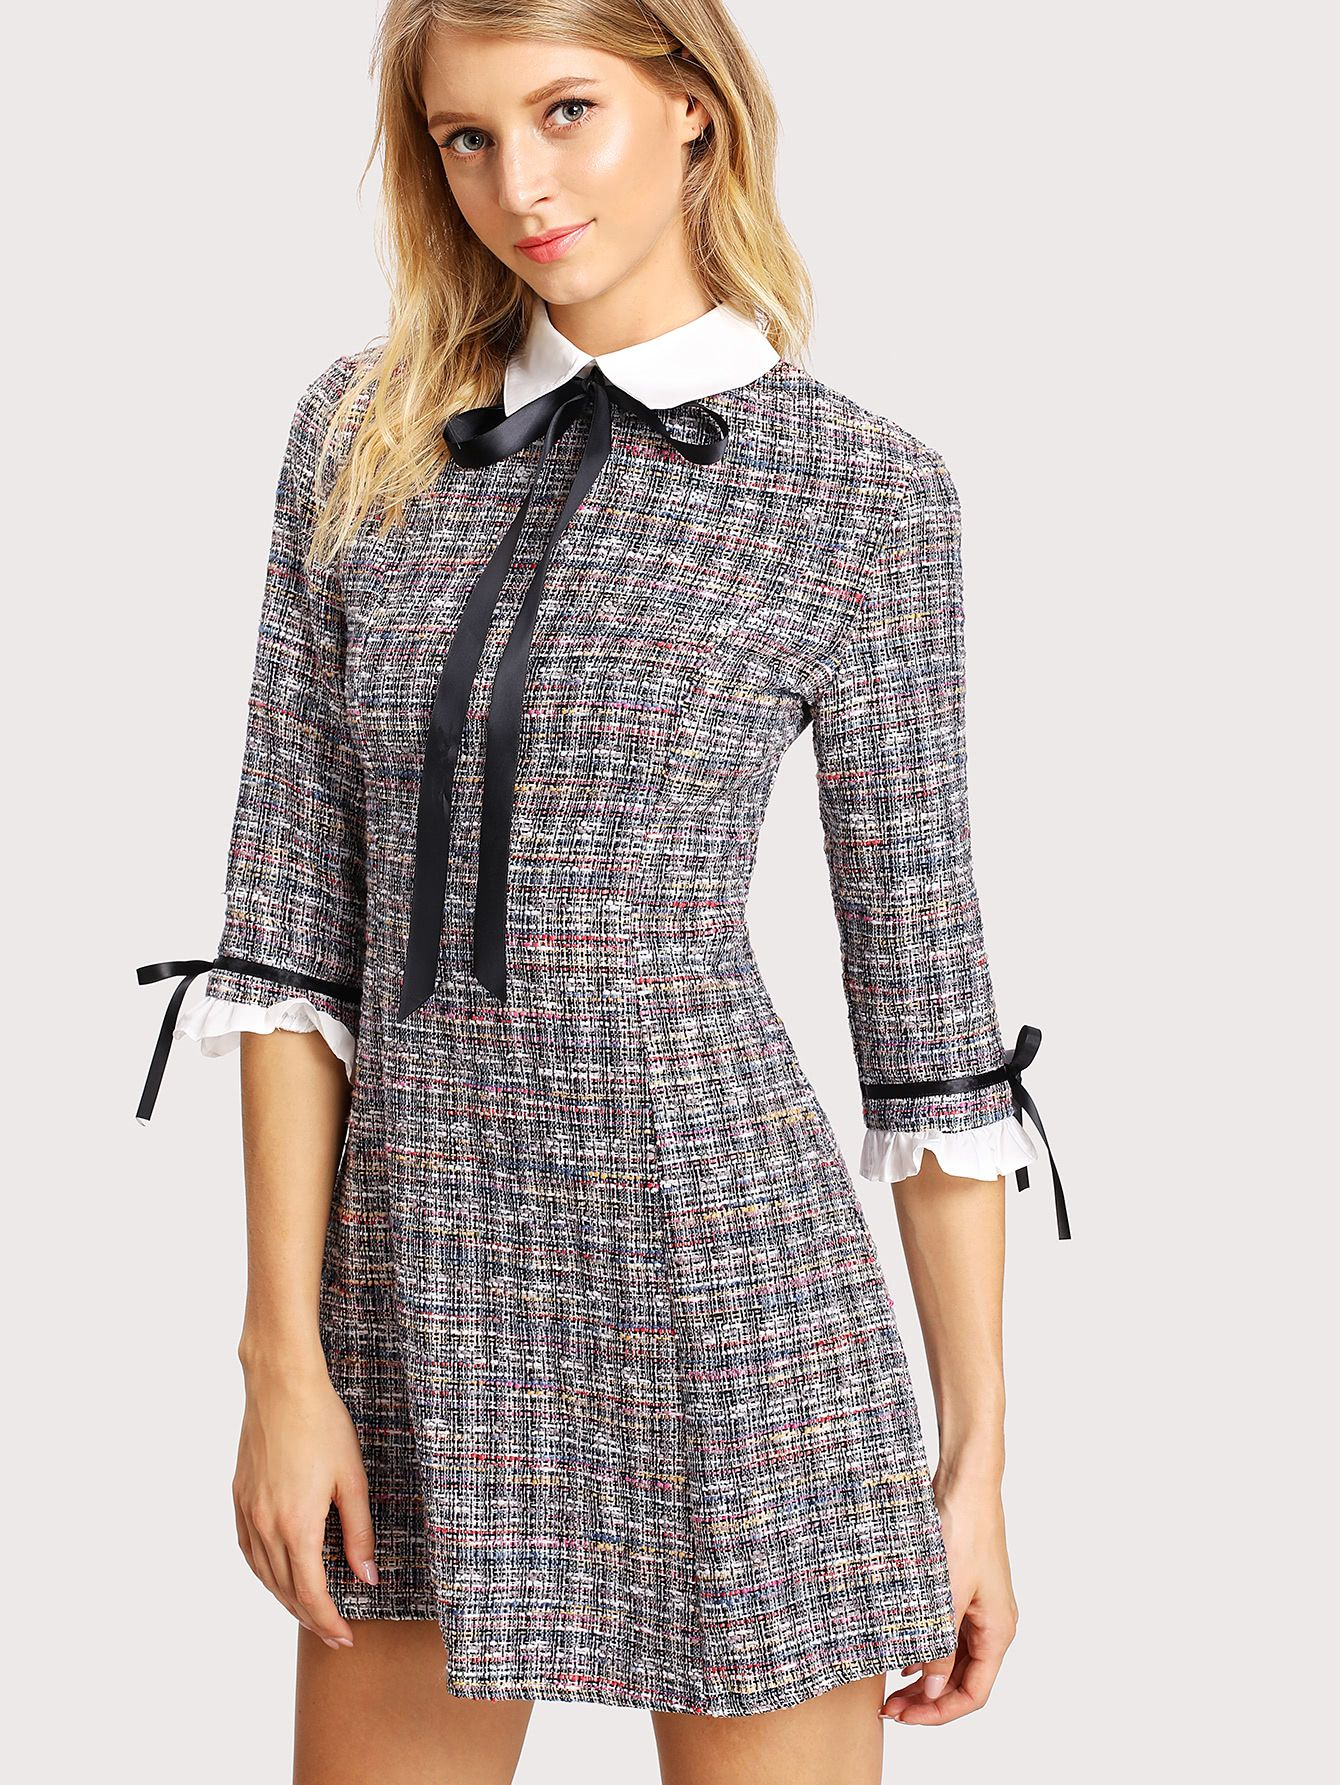 55a29072f8 Shop Contrast Collar And Cuff Tweed Dress online. SheIn offers Contrast  Collar And Cuff Tweed Dress & more to fit your fashionable needs.